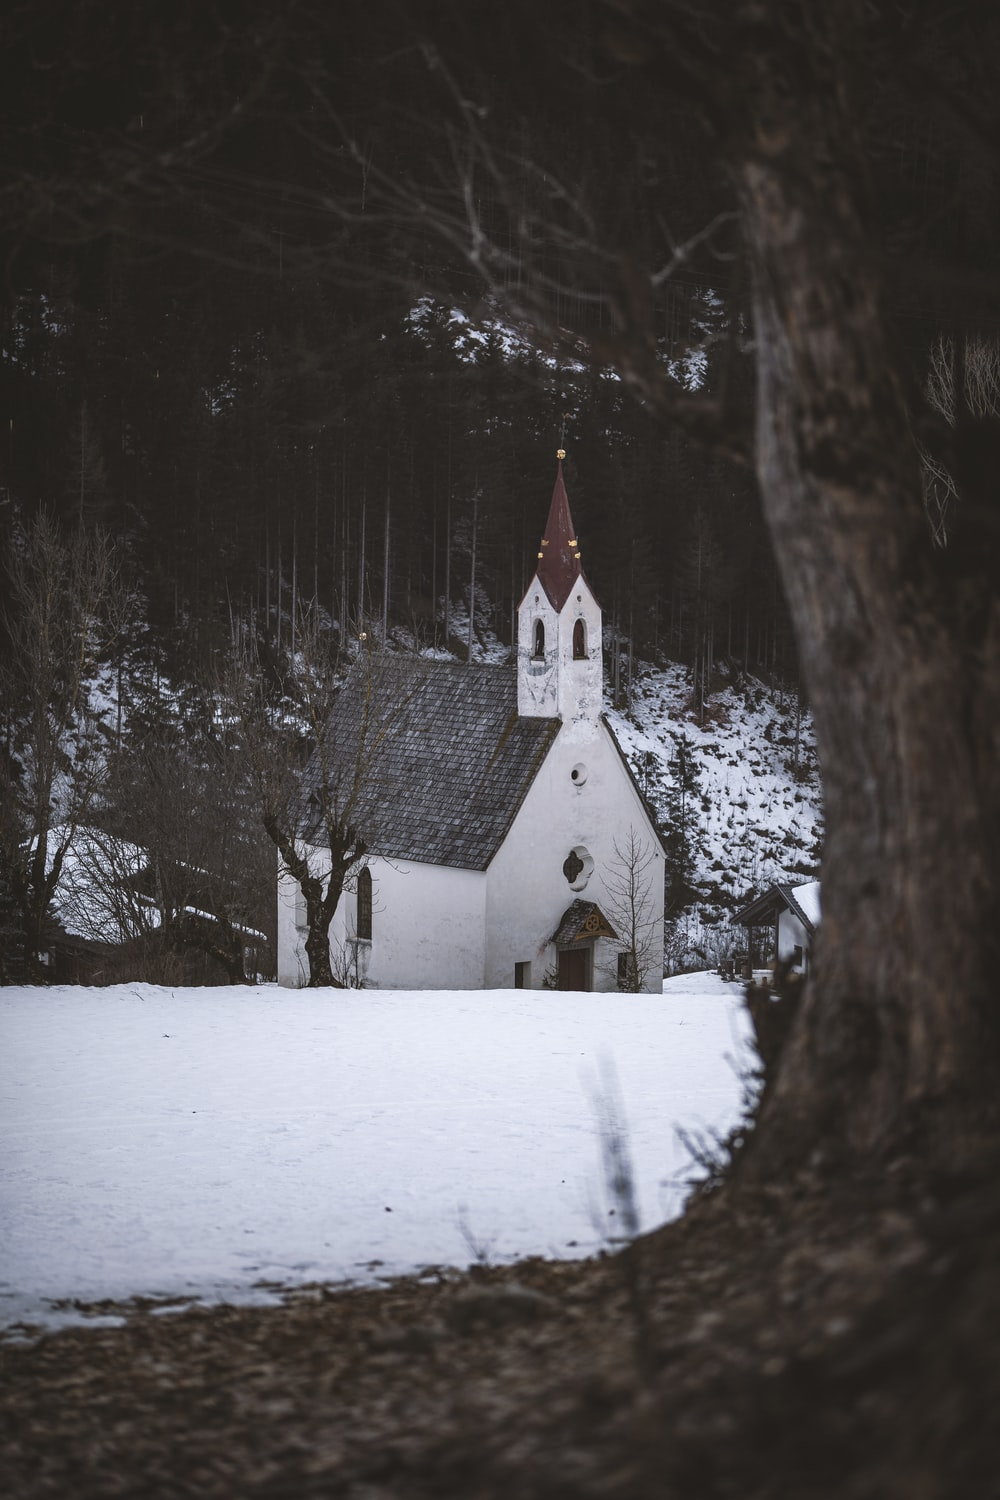 white and brown cathedral in the middle of the forest